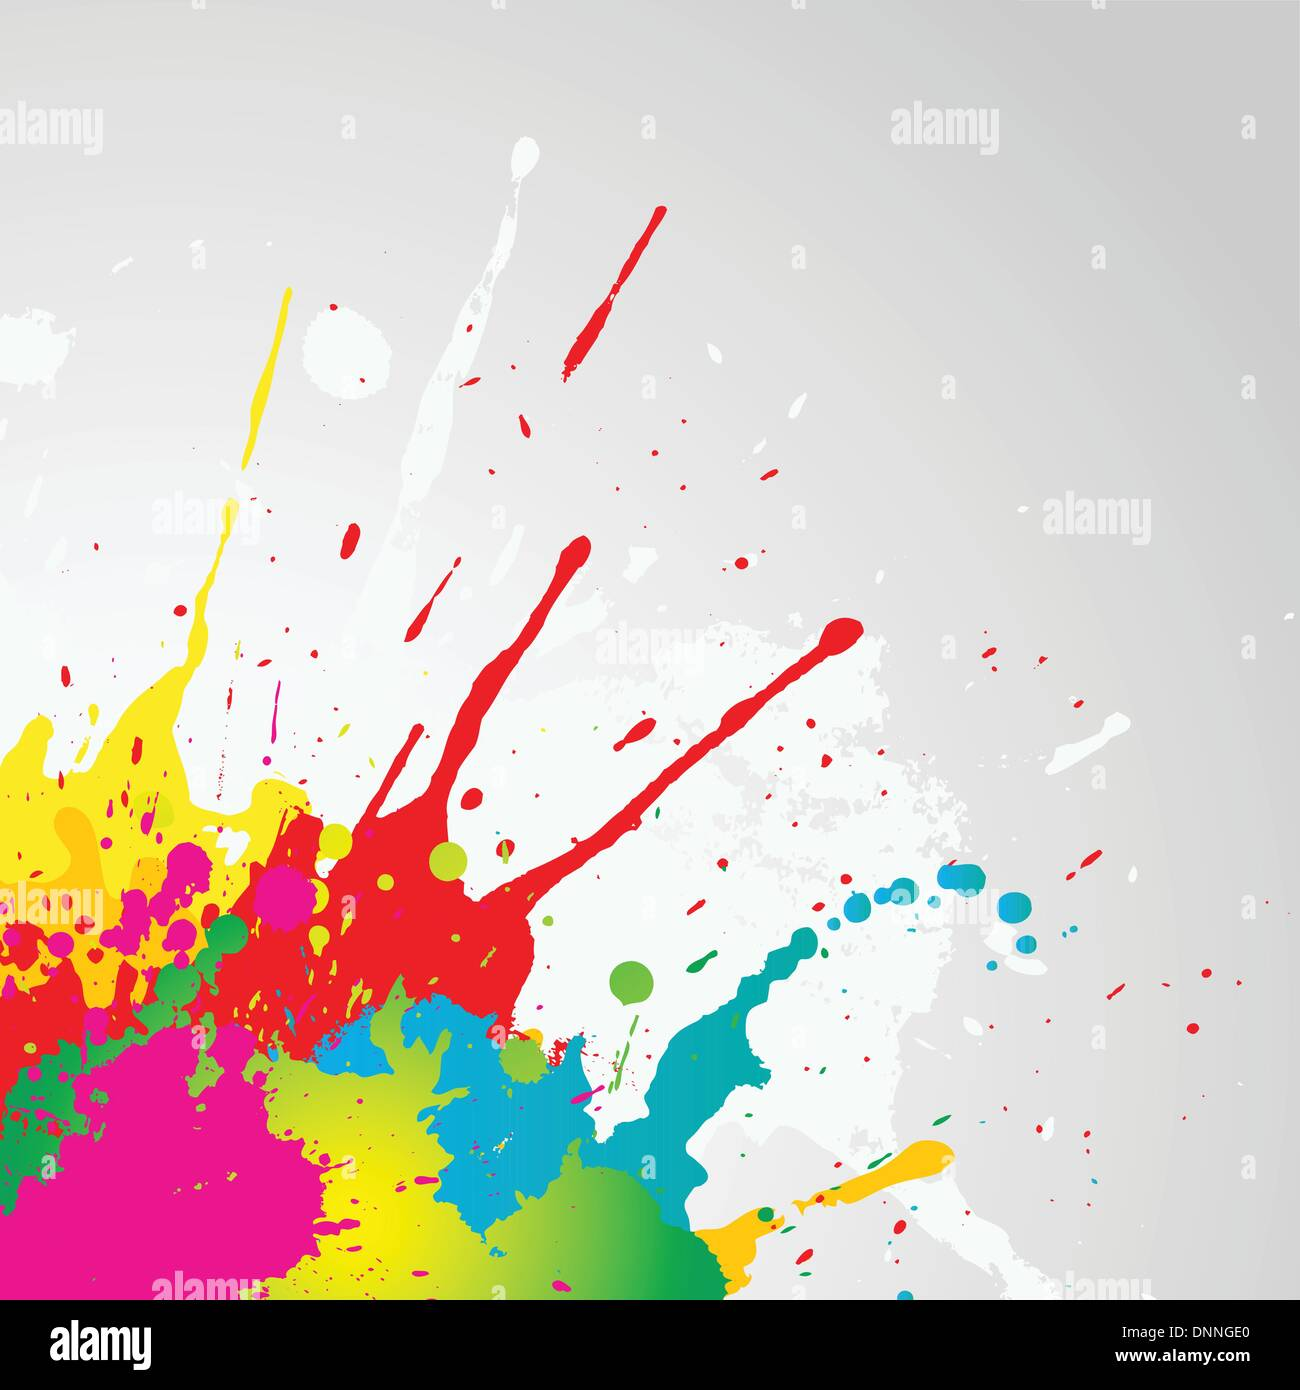 Grunge background with colourful paint splats - Stock Image